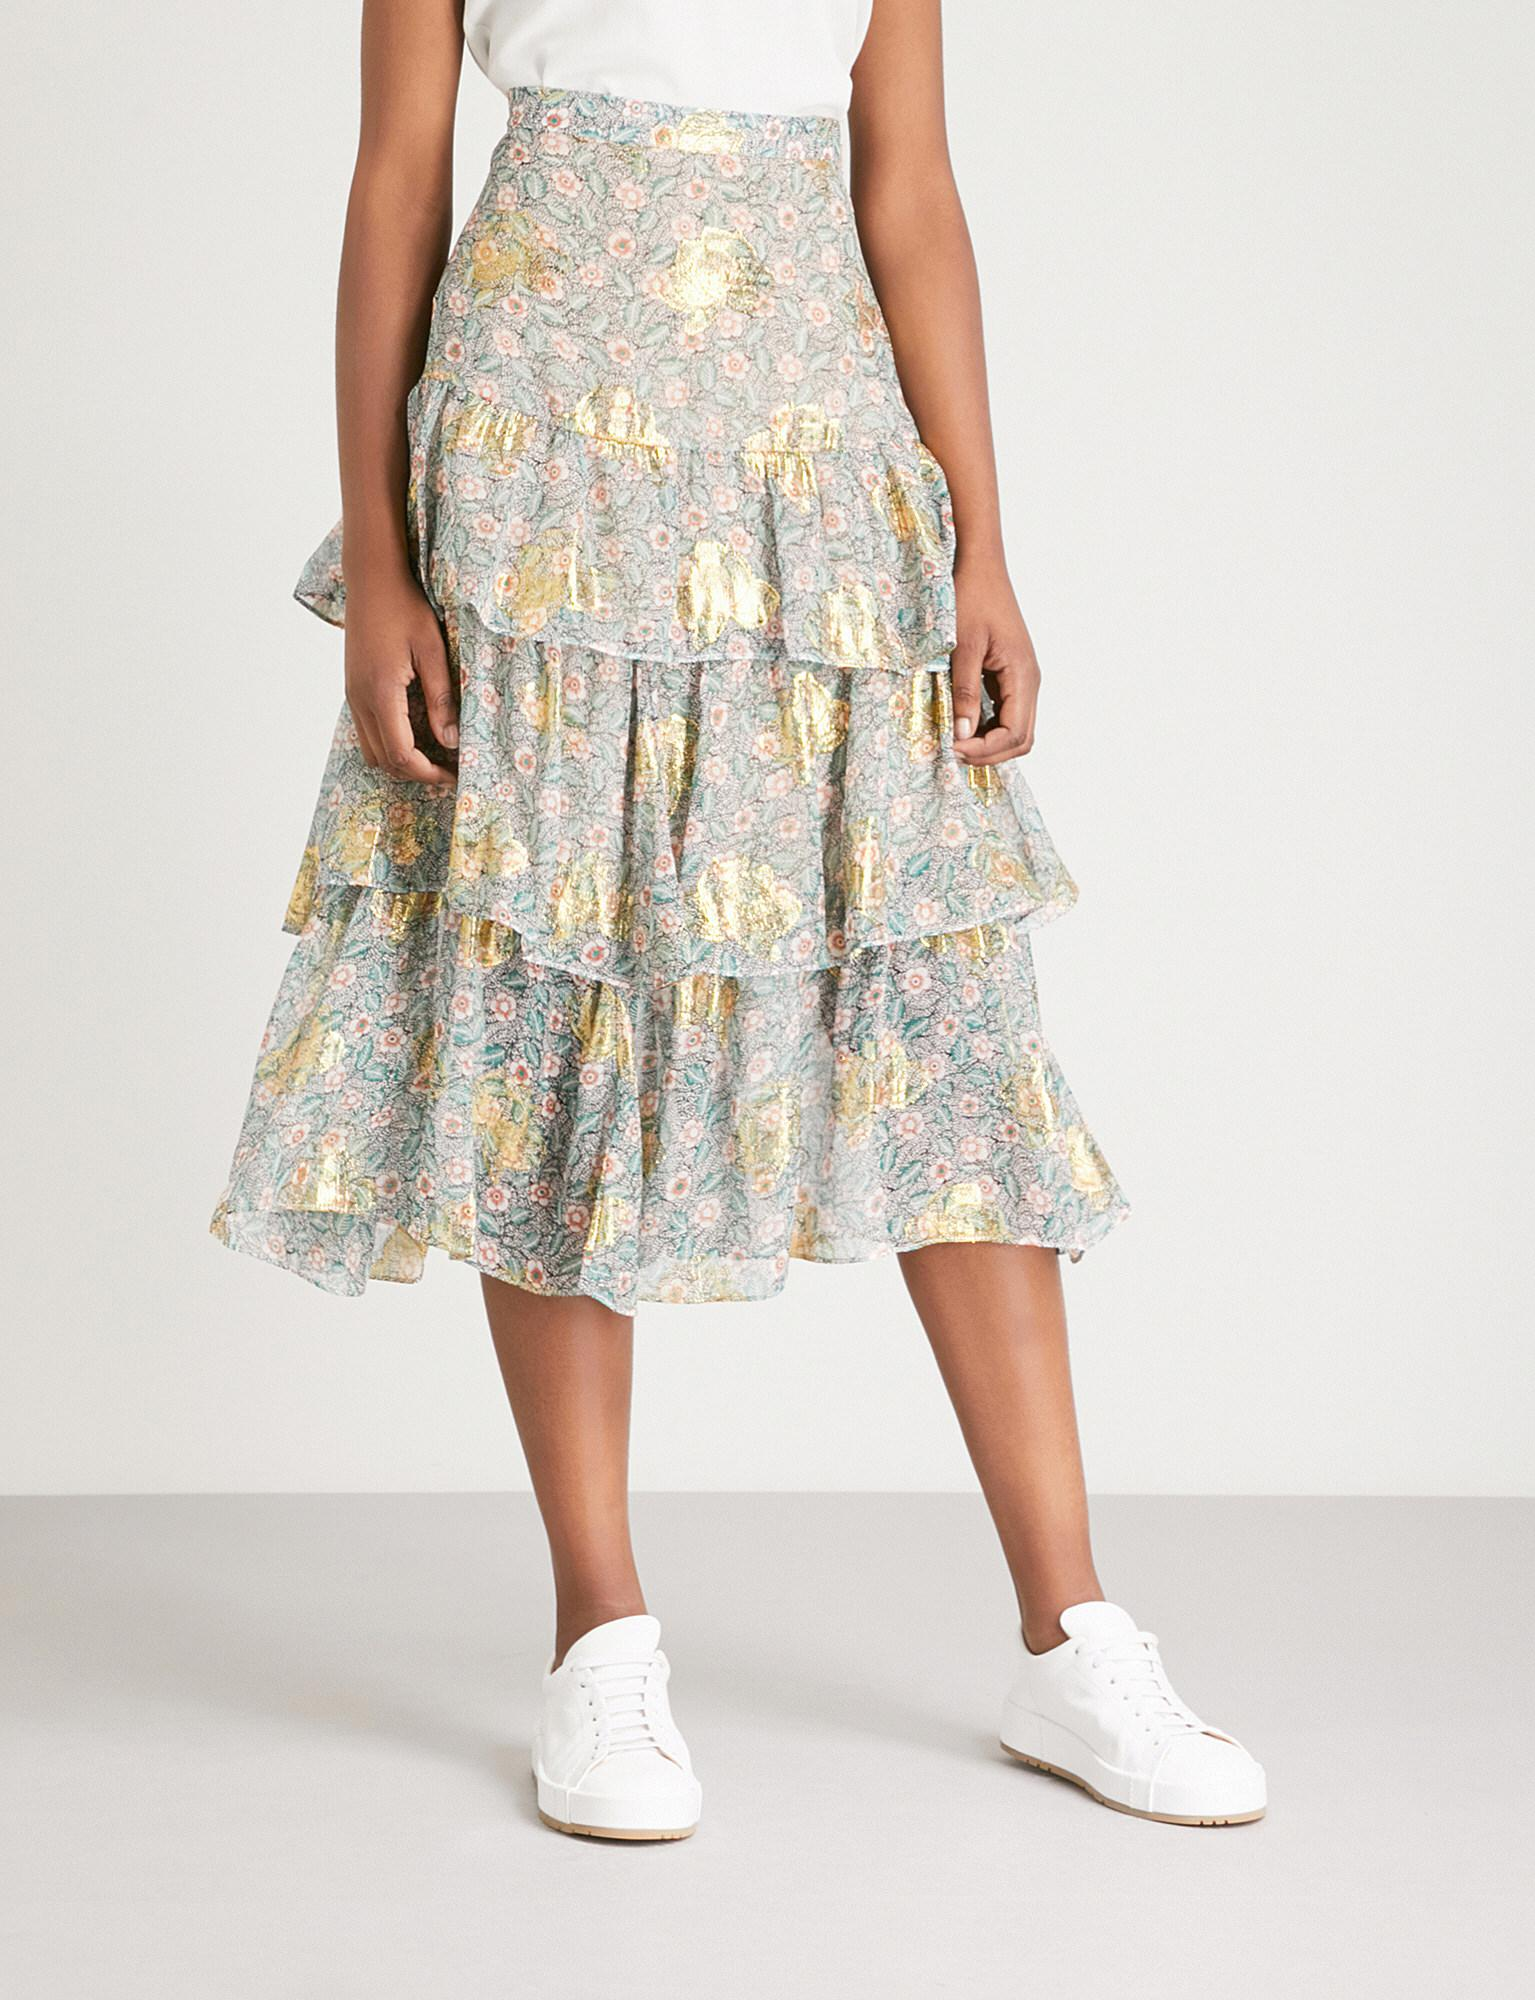 d34b4620927 Gallery. Previously sold at: Selfridges · Women's Printed Skirts